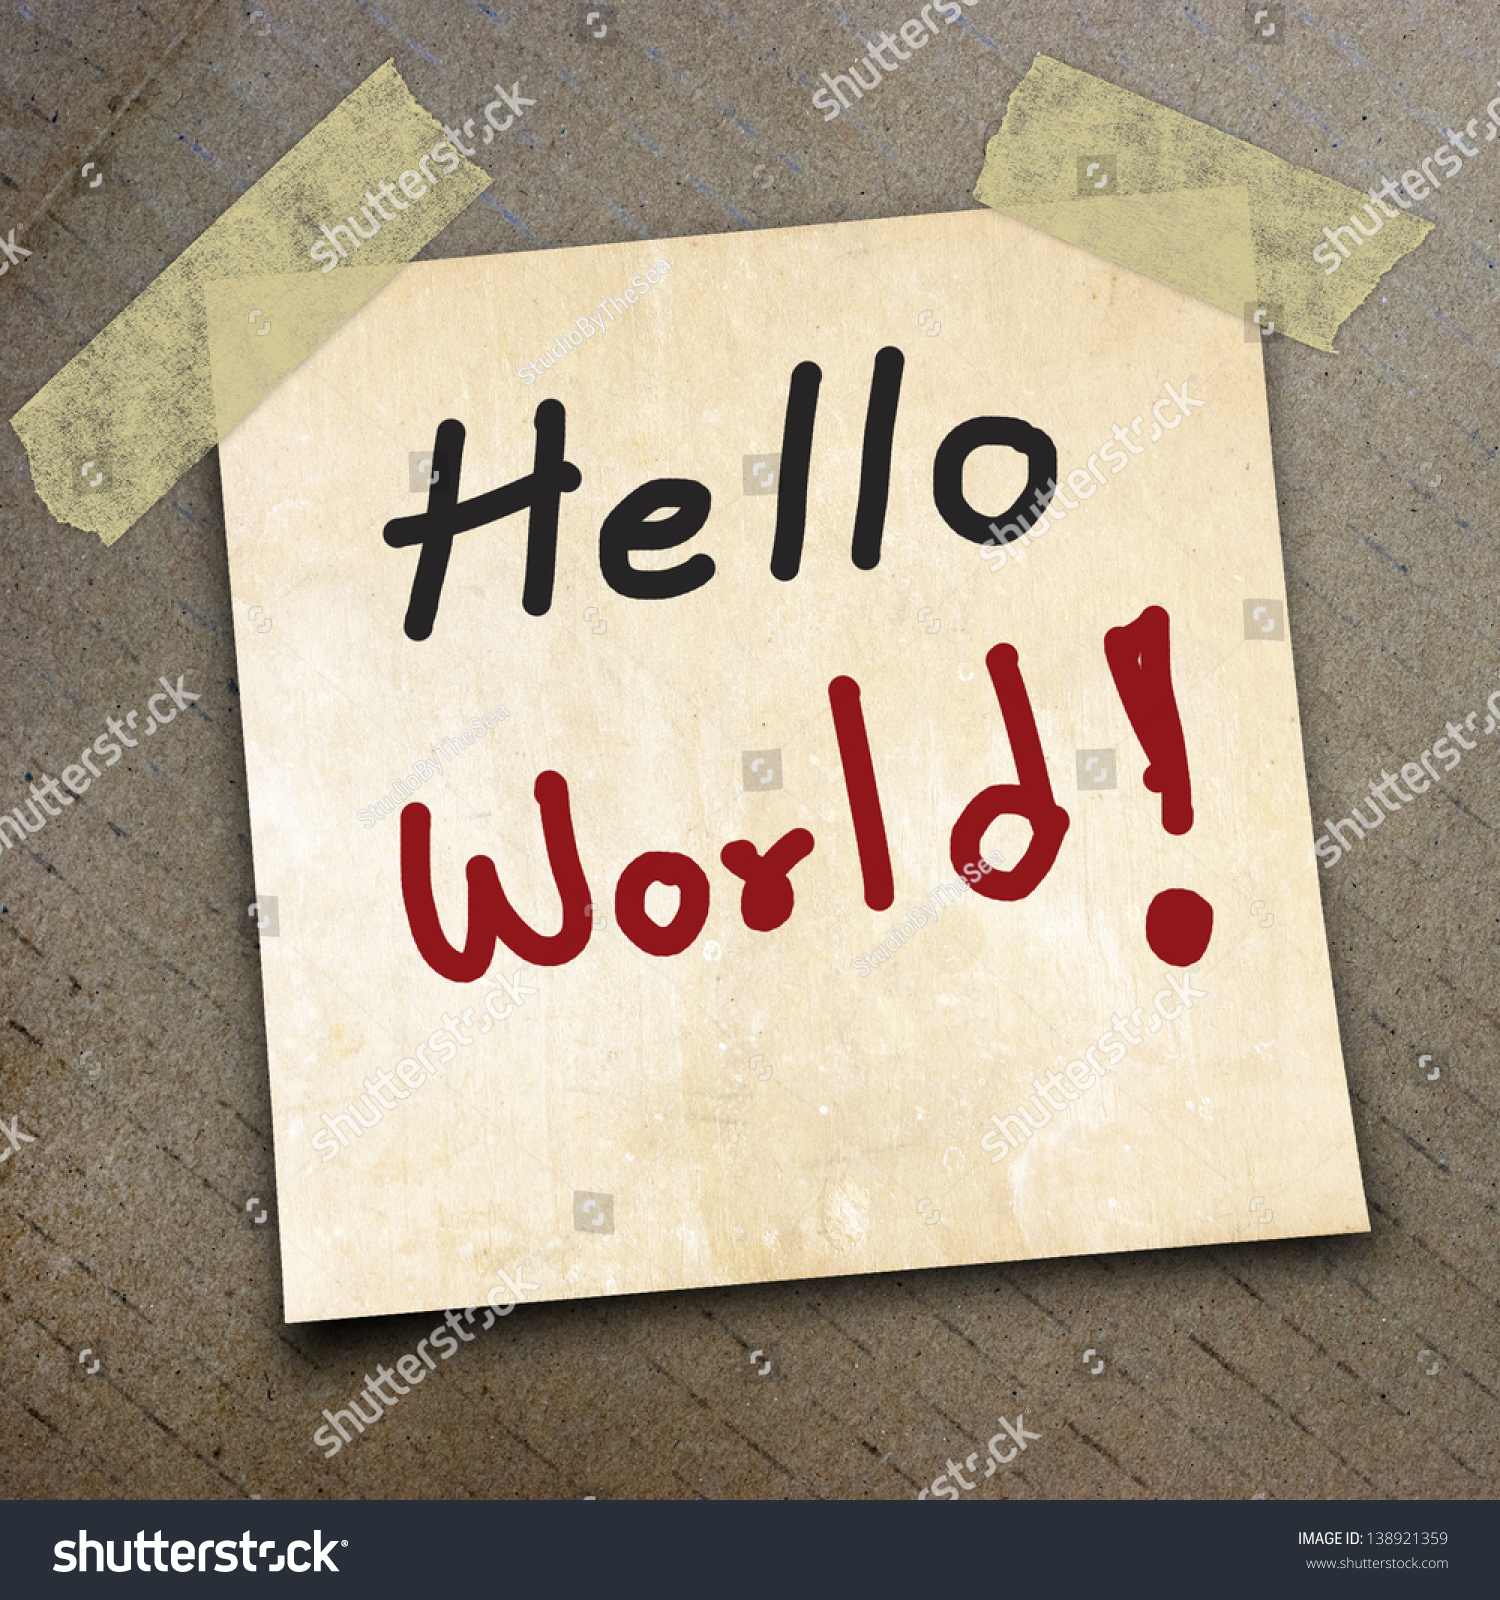 Wallpaper Helloworld: Text Hello World Packing Paper Box Stock Photo 138921359